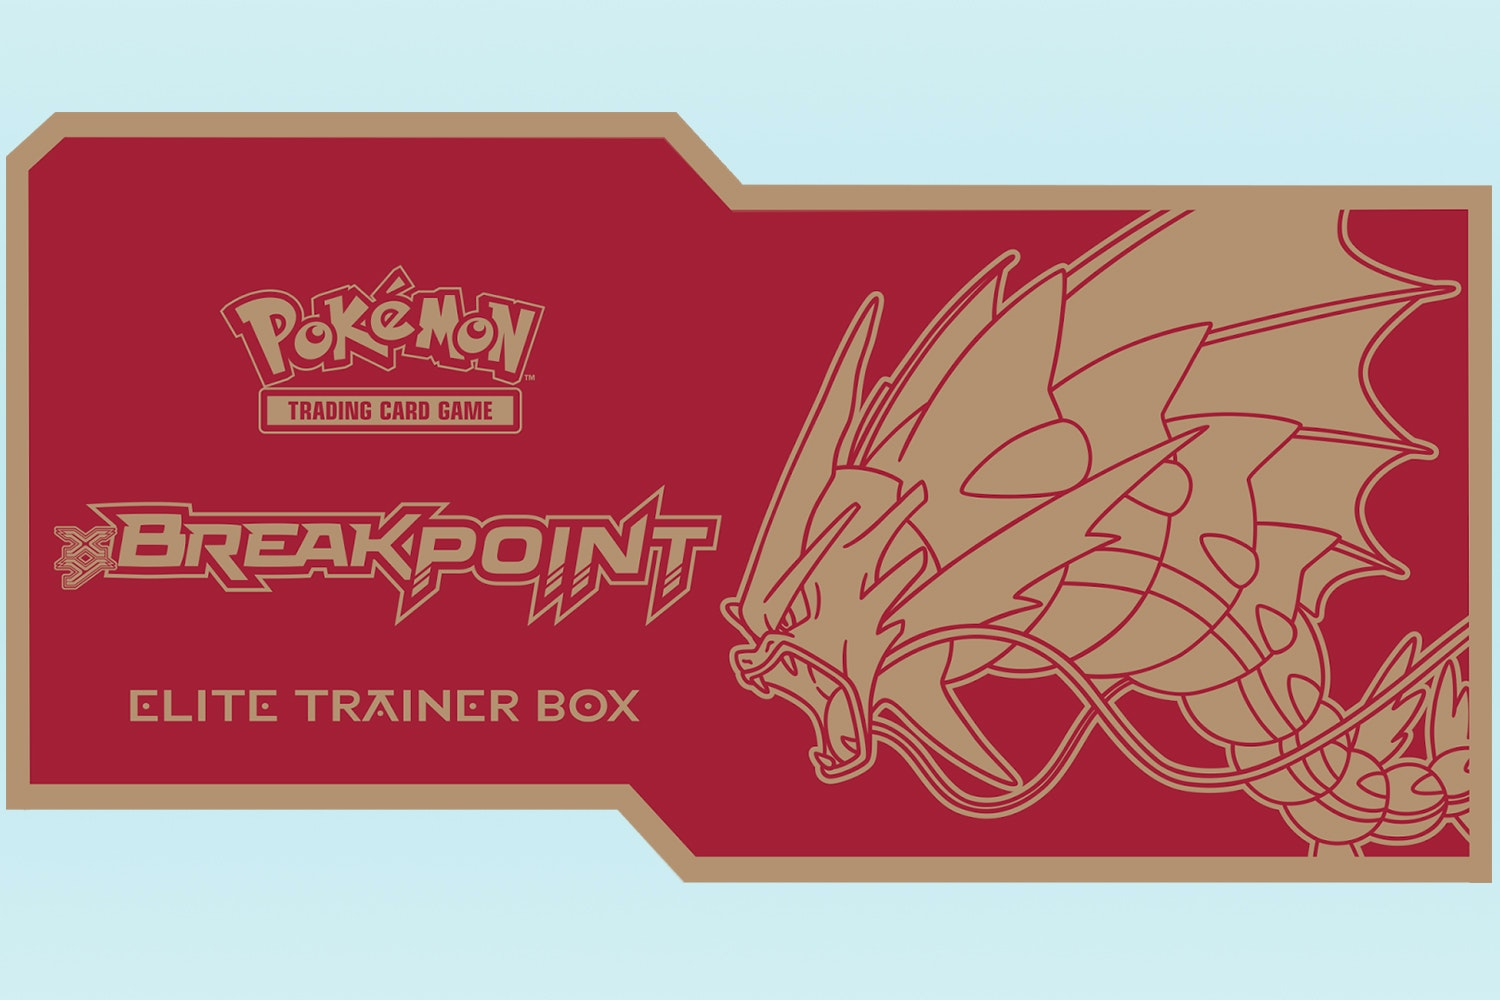 Pokémon XY BREAKpoint Elite Trainer Box Prerelease